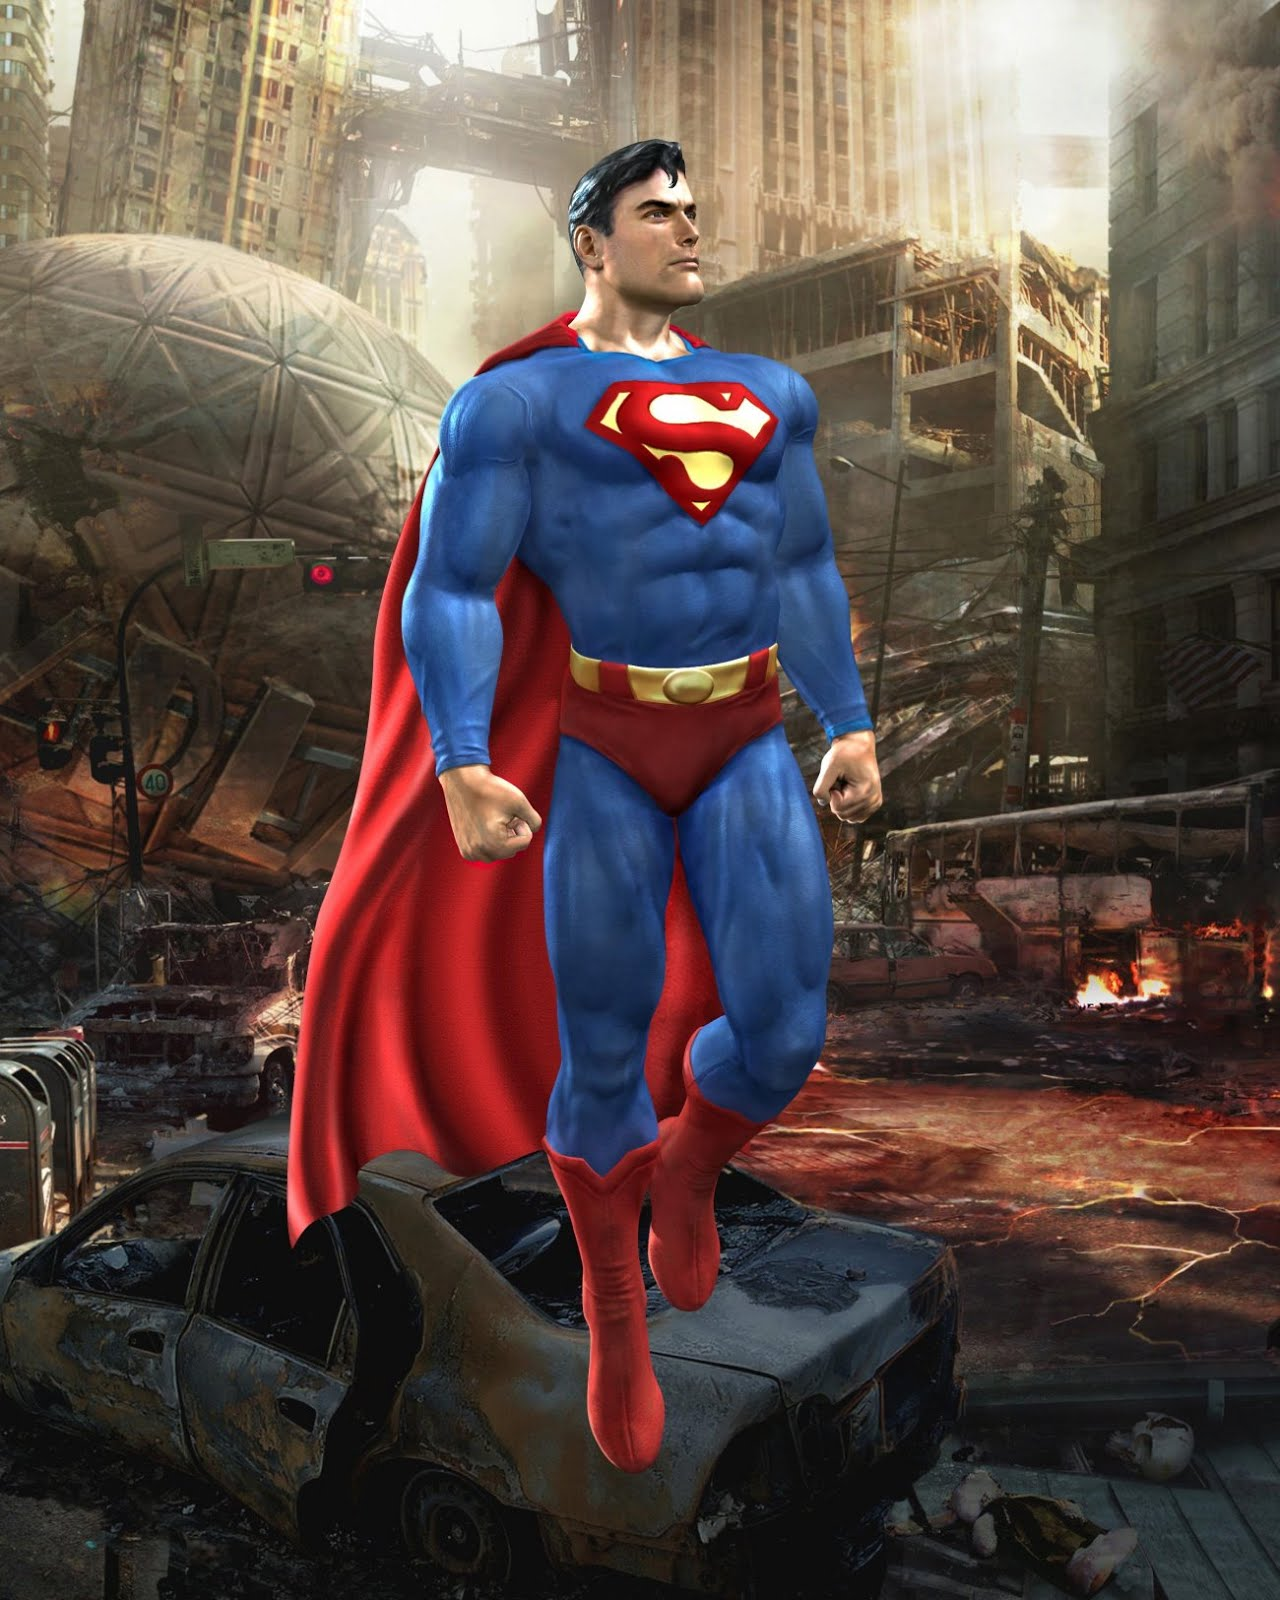 Top Superhero Wallpaper: Superman